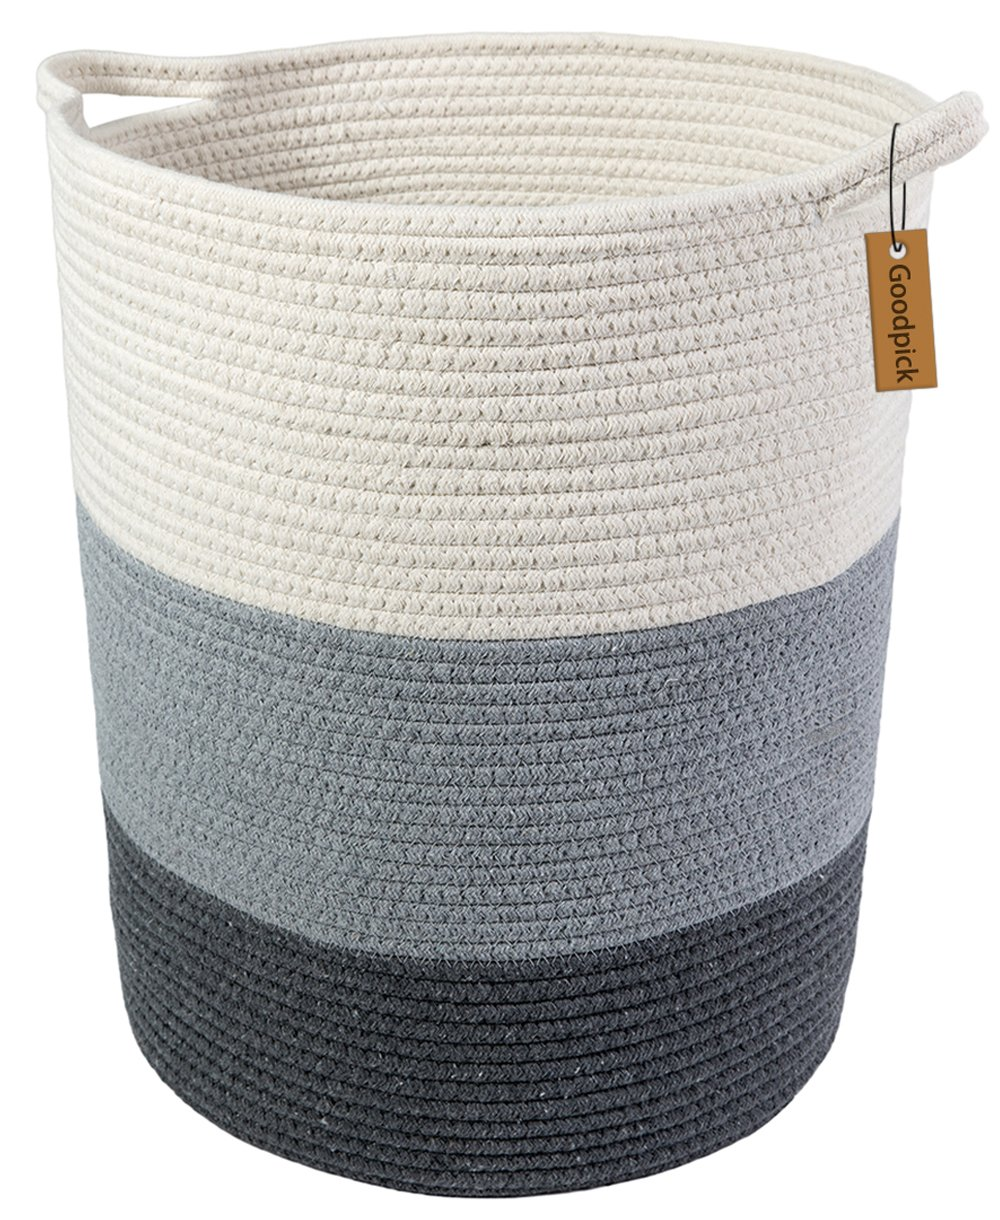 Goodpick 18.8'' x 17.7'' x 13.8'' Extra Large Cotton Rope Basket - Woven Baskets - Cotton Thread Nursery Storage Bins - Laundry Basket - Baby Toy Storage-Home Storage Containers